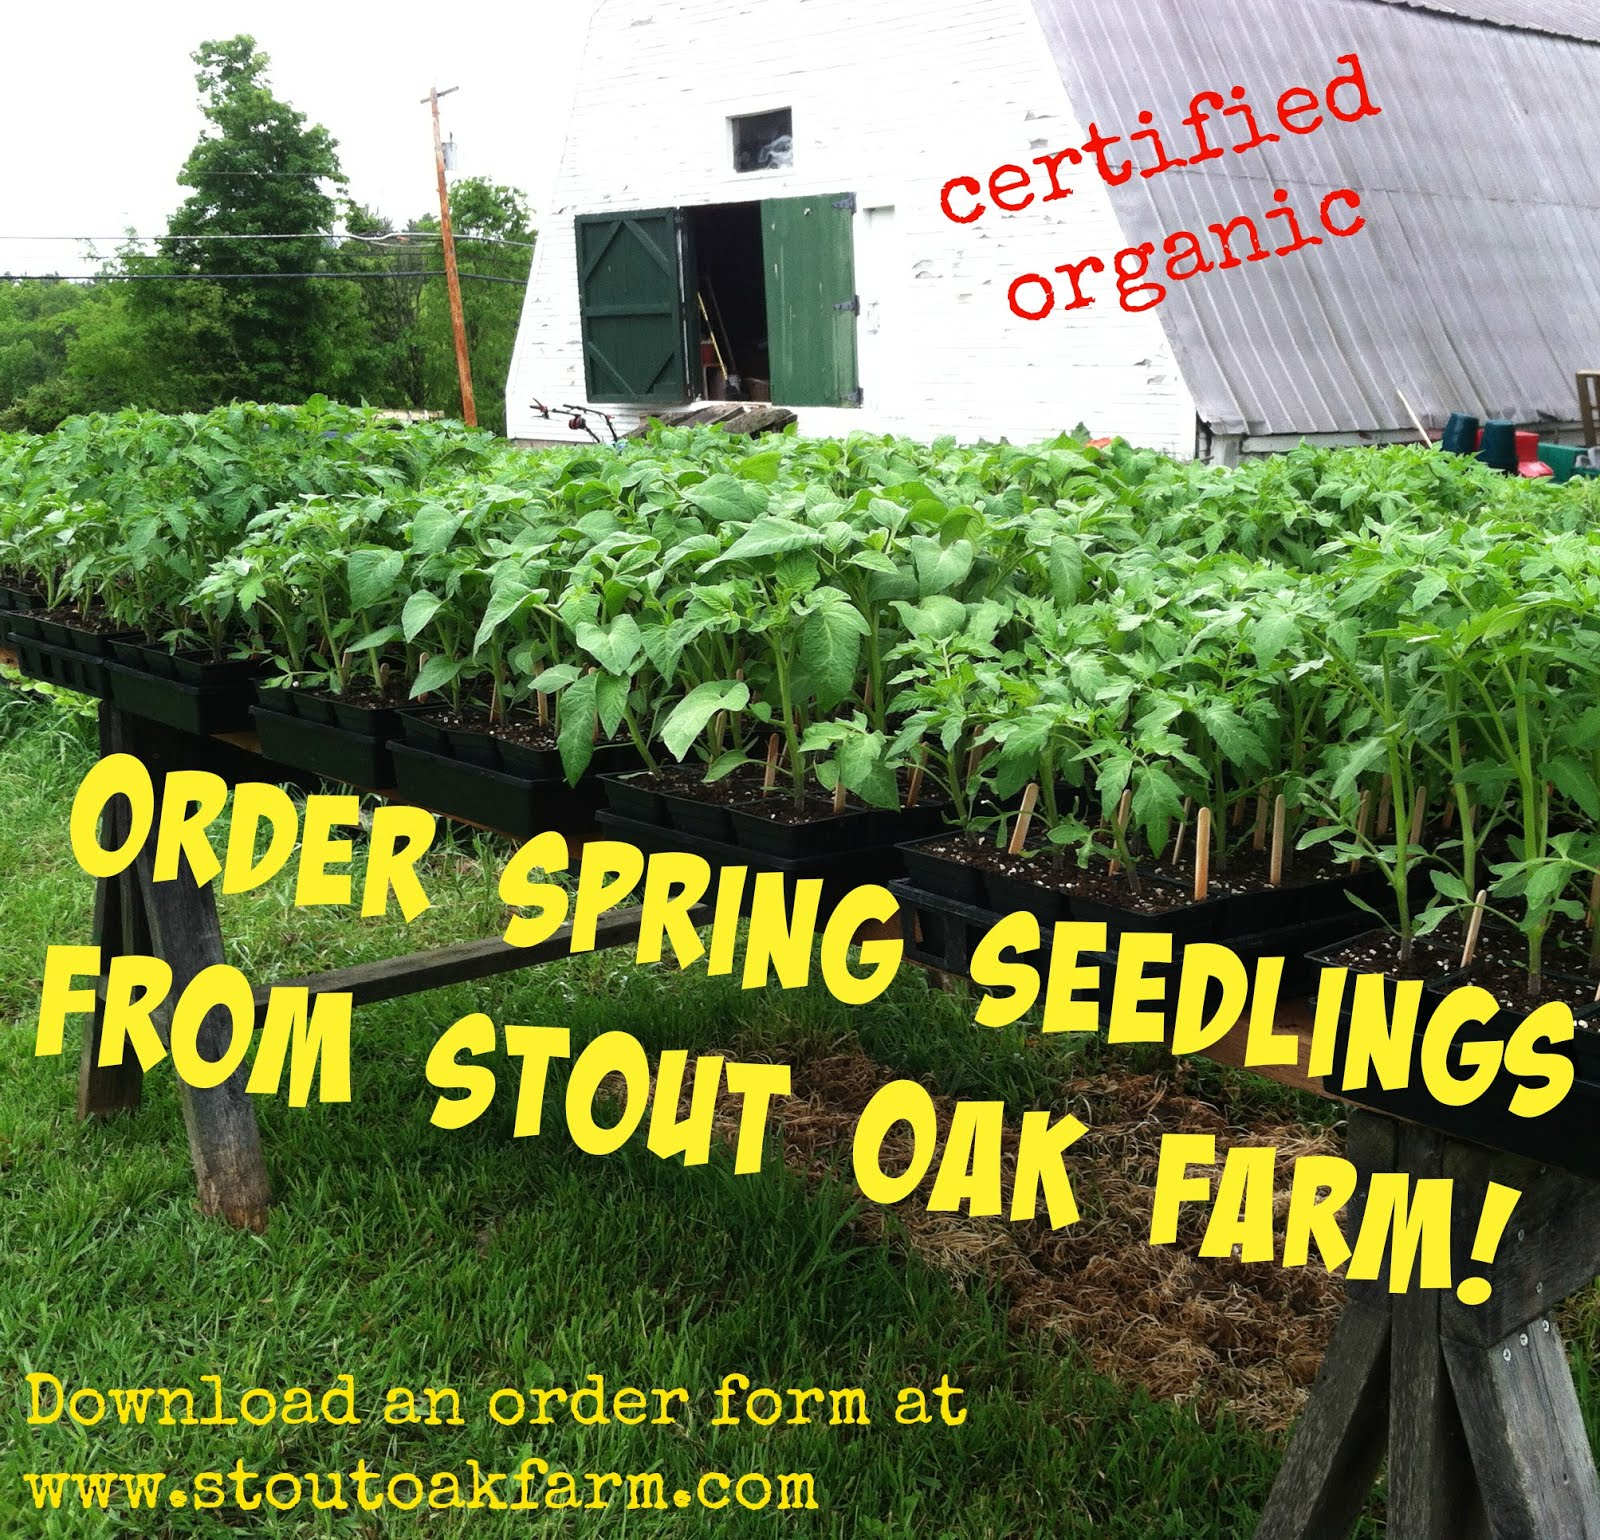 pre-order seedlings for your garden